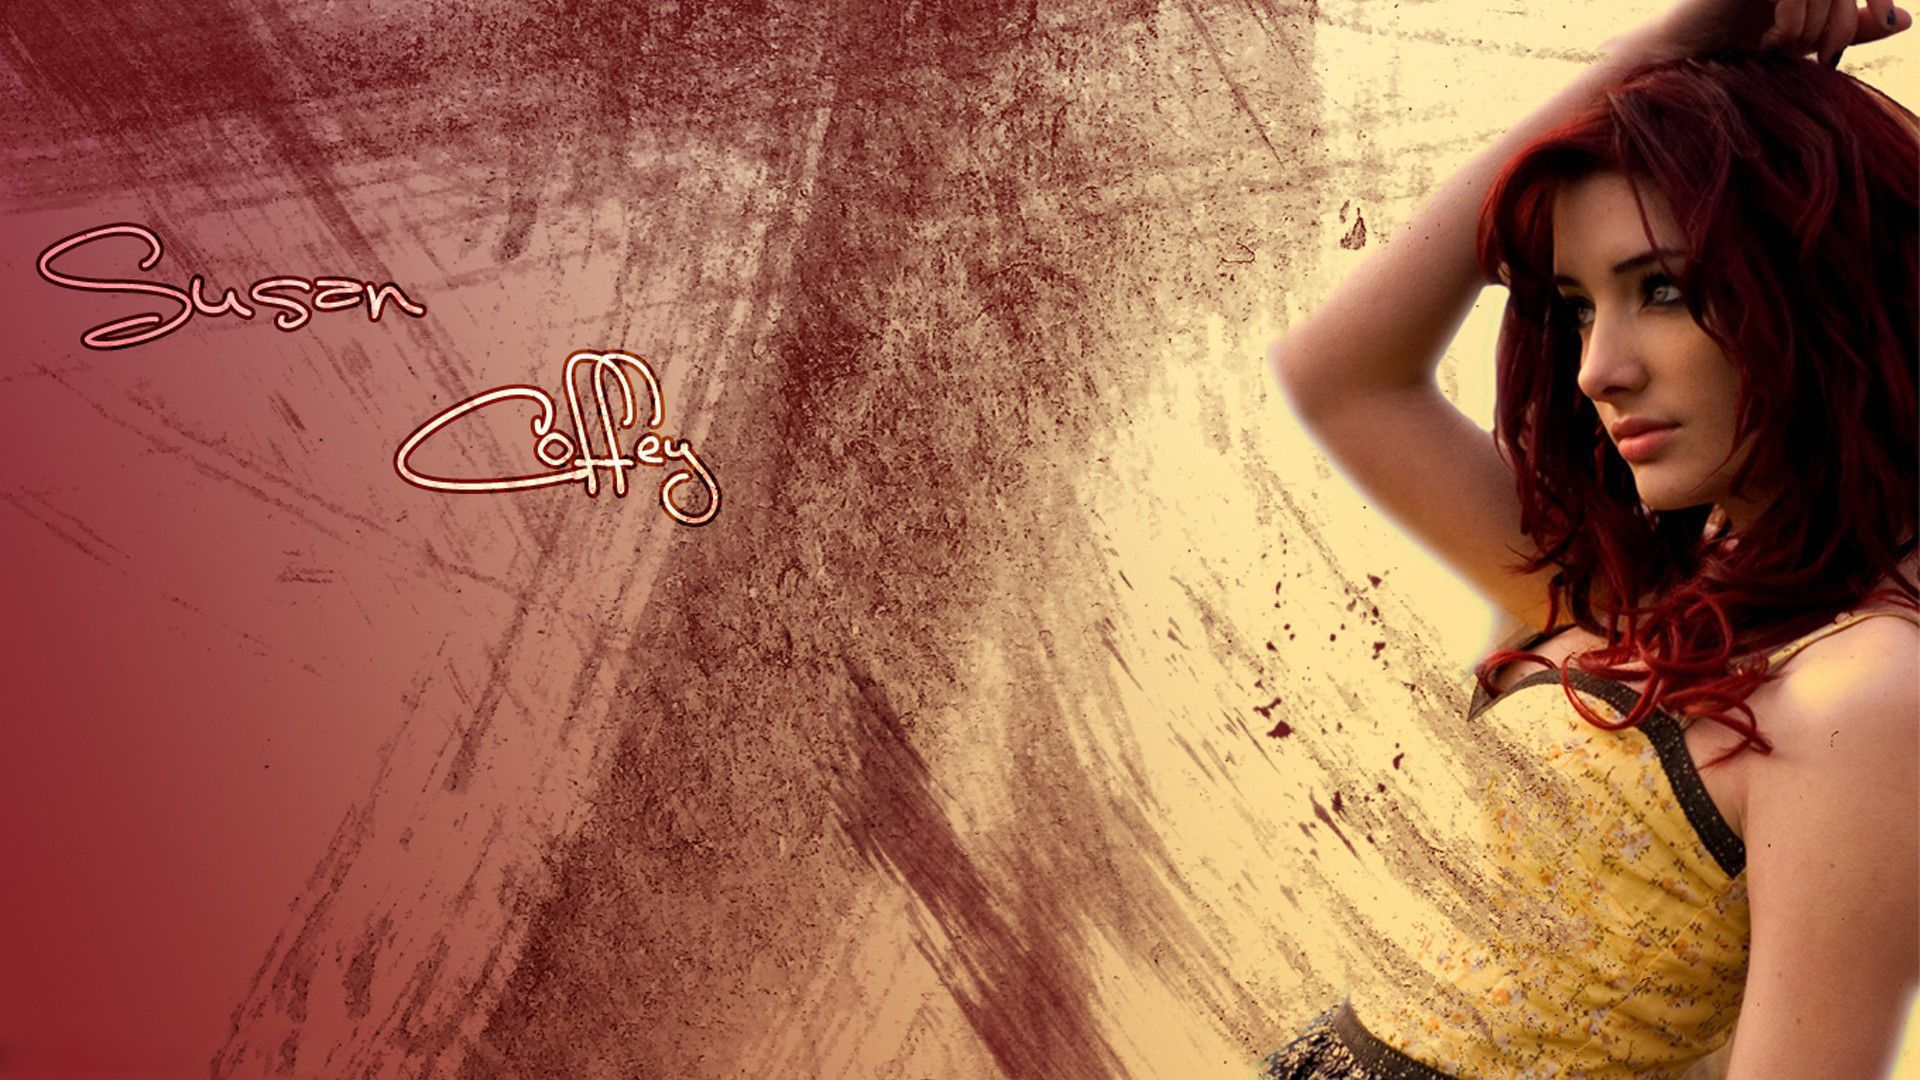 sushan wallpapers hd - photo #16